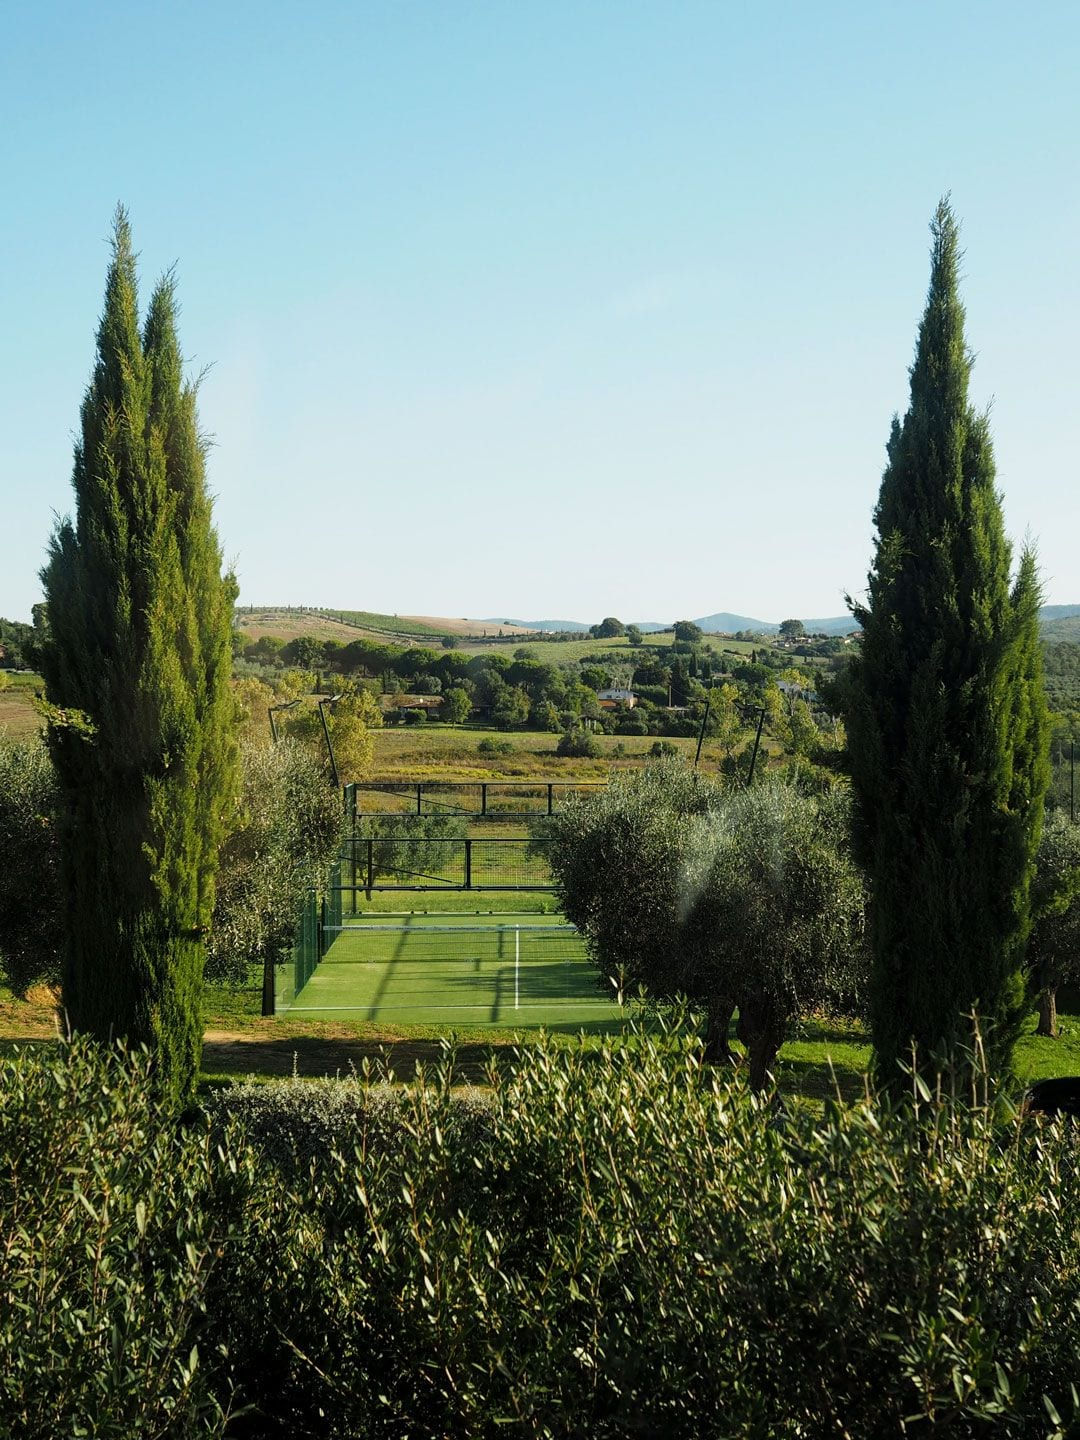 Tennis Courts at Locanda Rossa, Capalbio, Tuscany